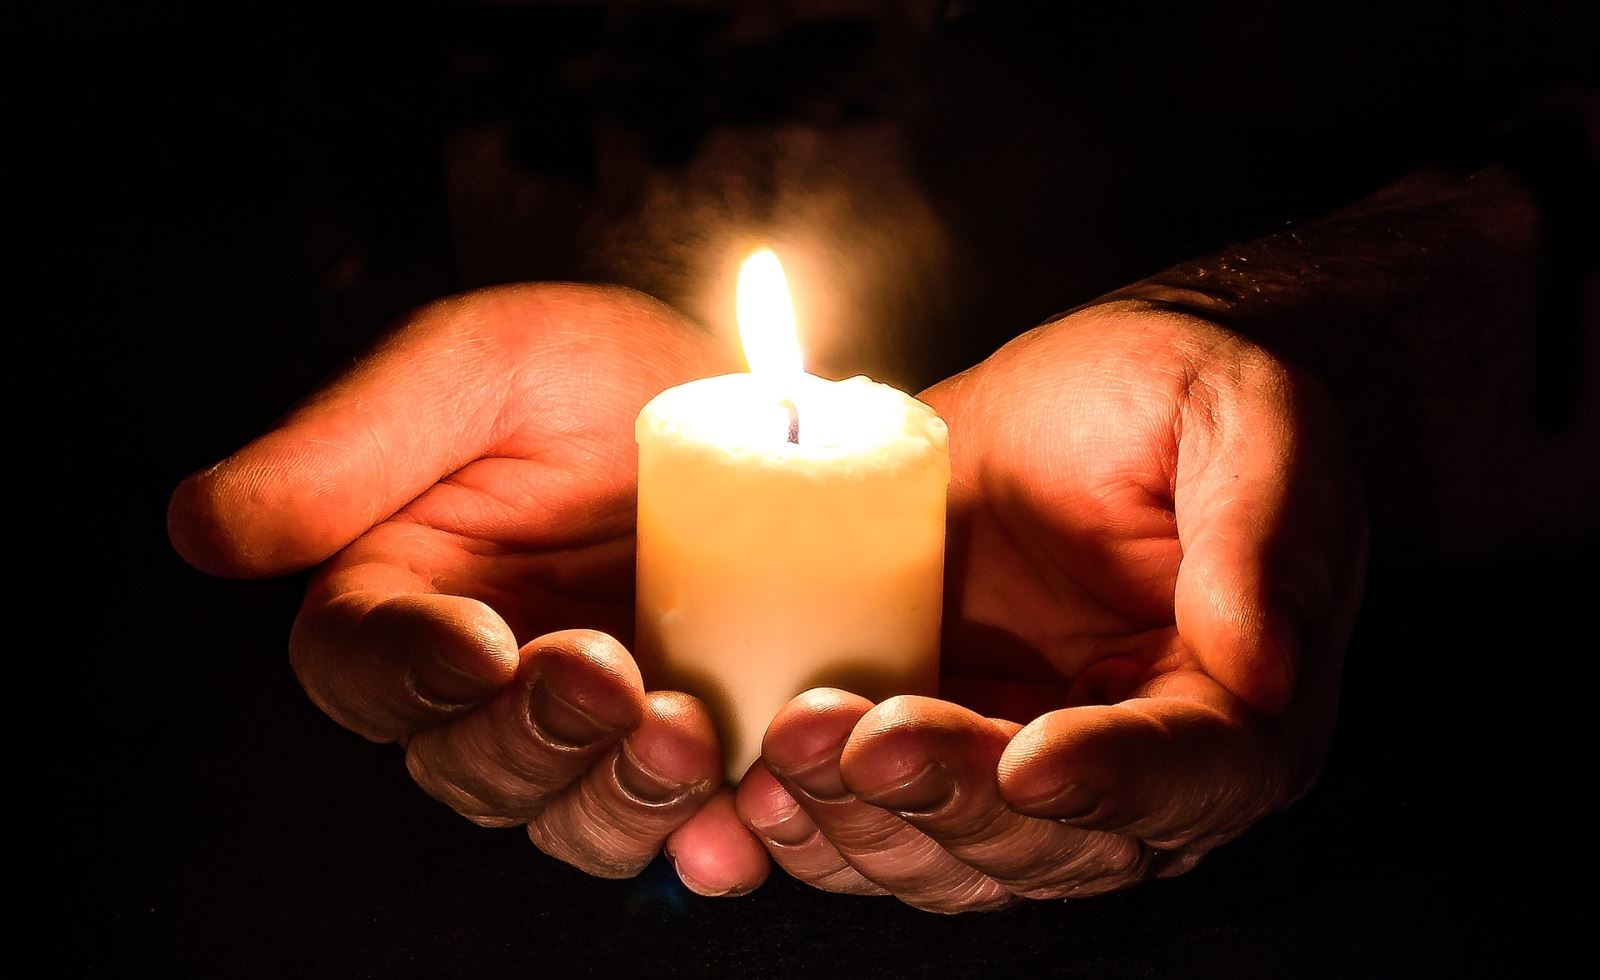 Two hands hold a small, lit candle in the darkness.